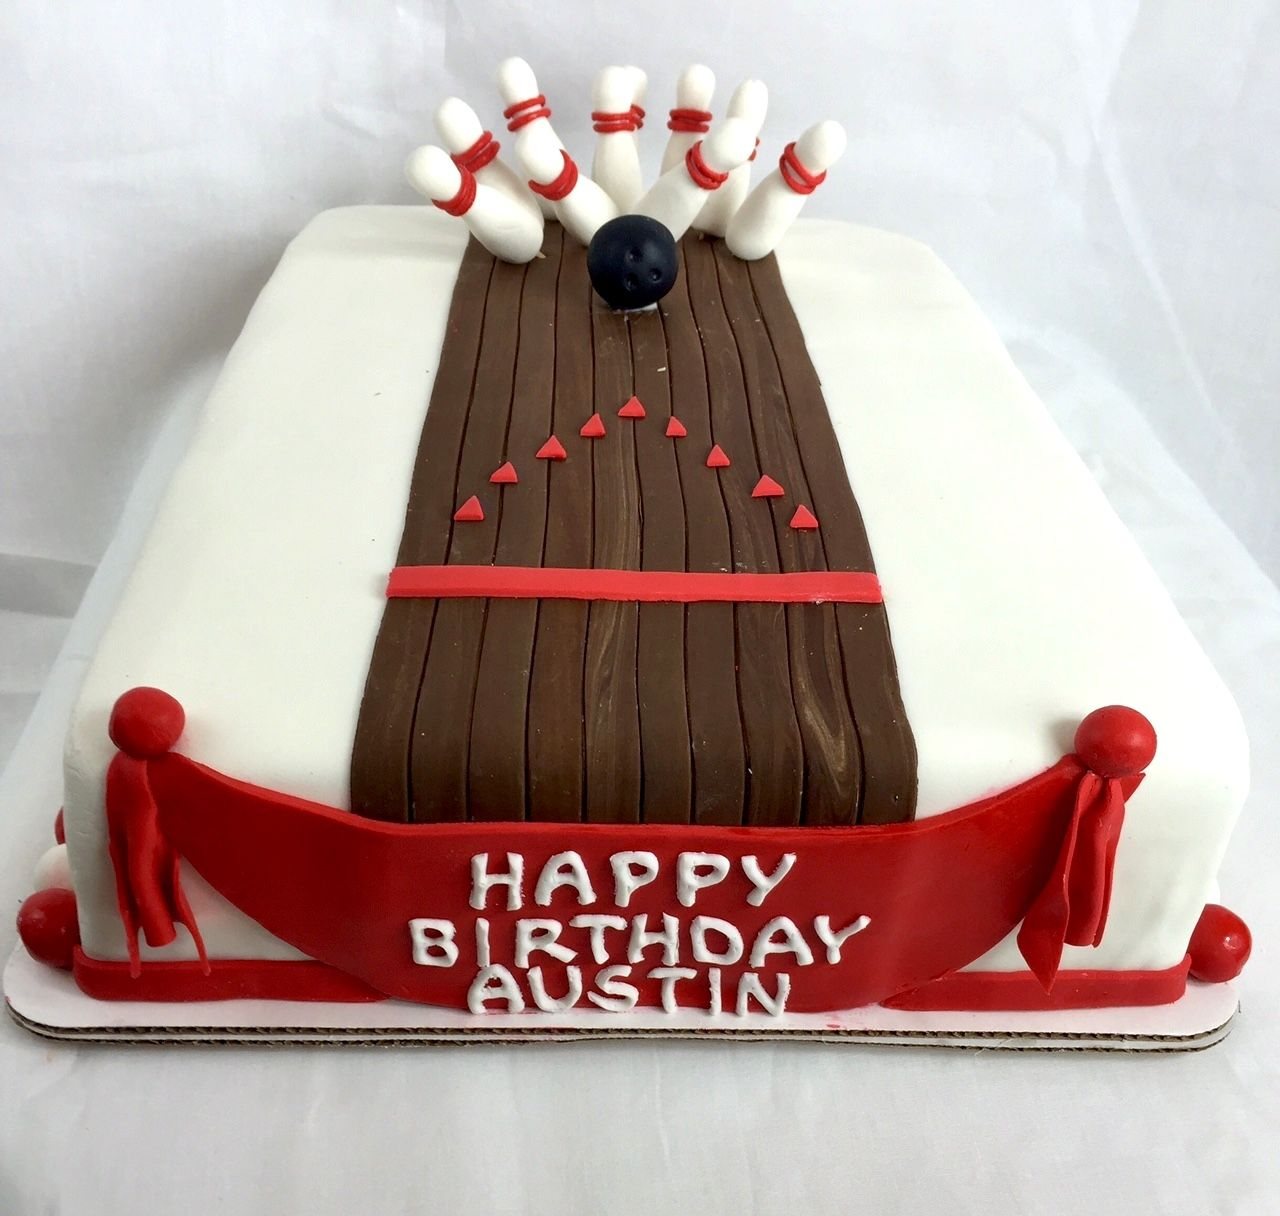 Another view from a recent bowling birthday cake we made